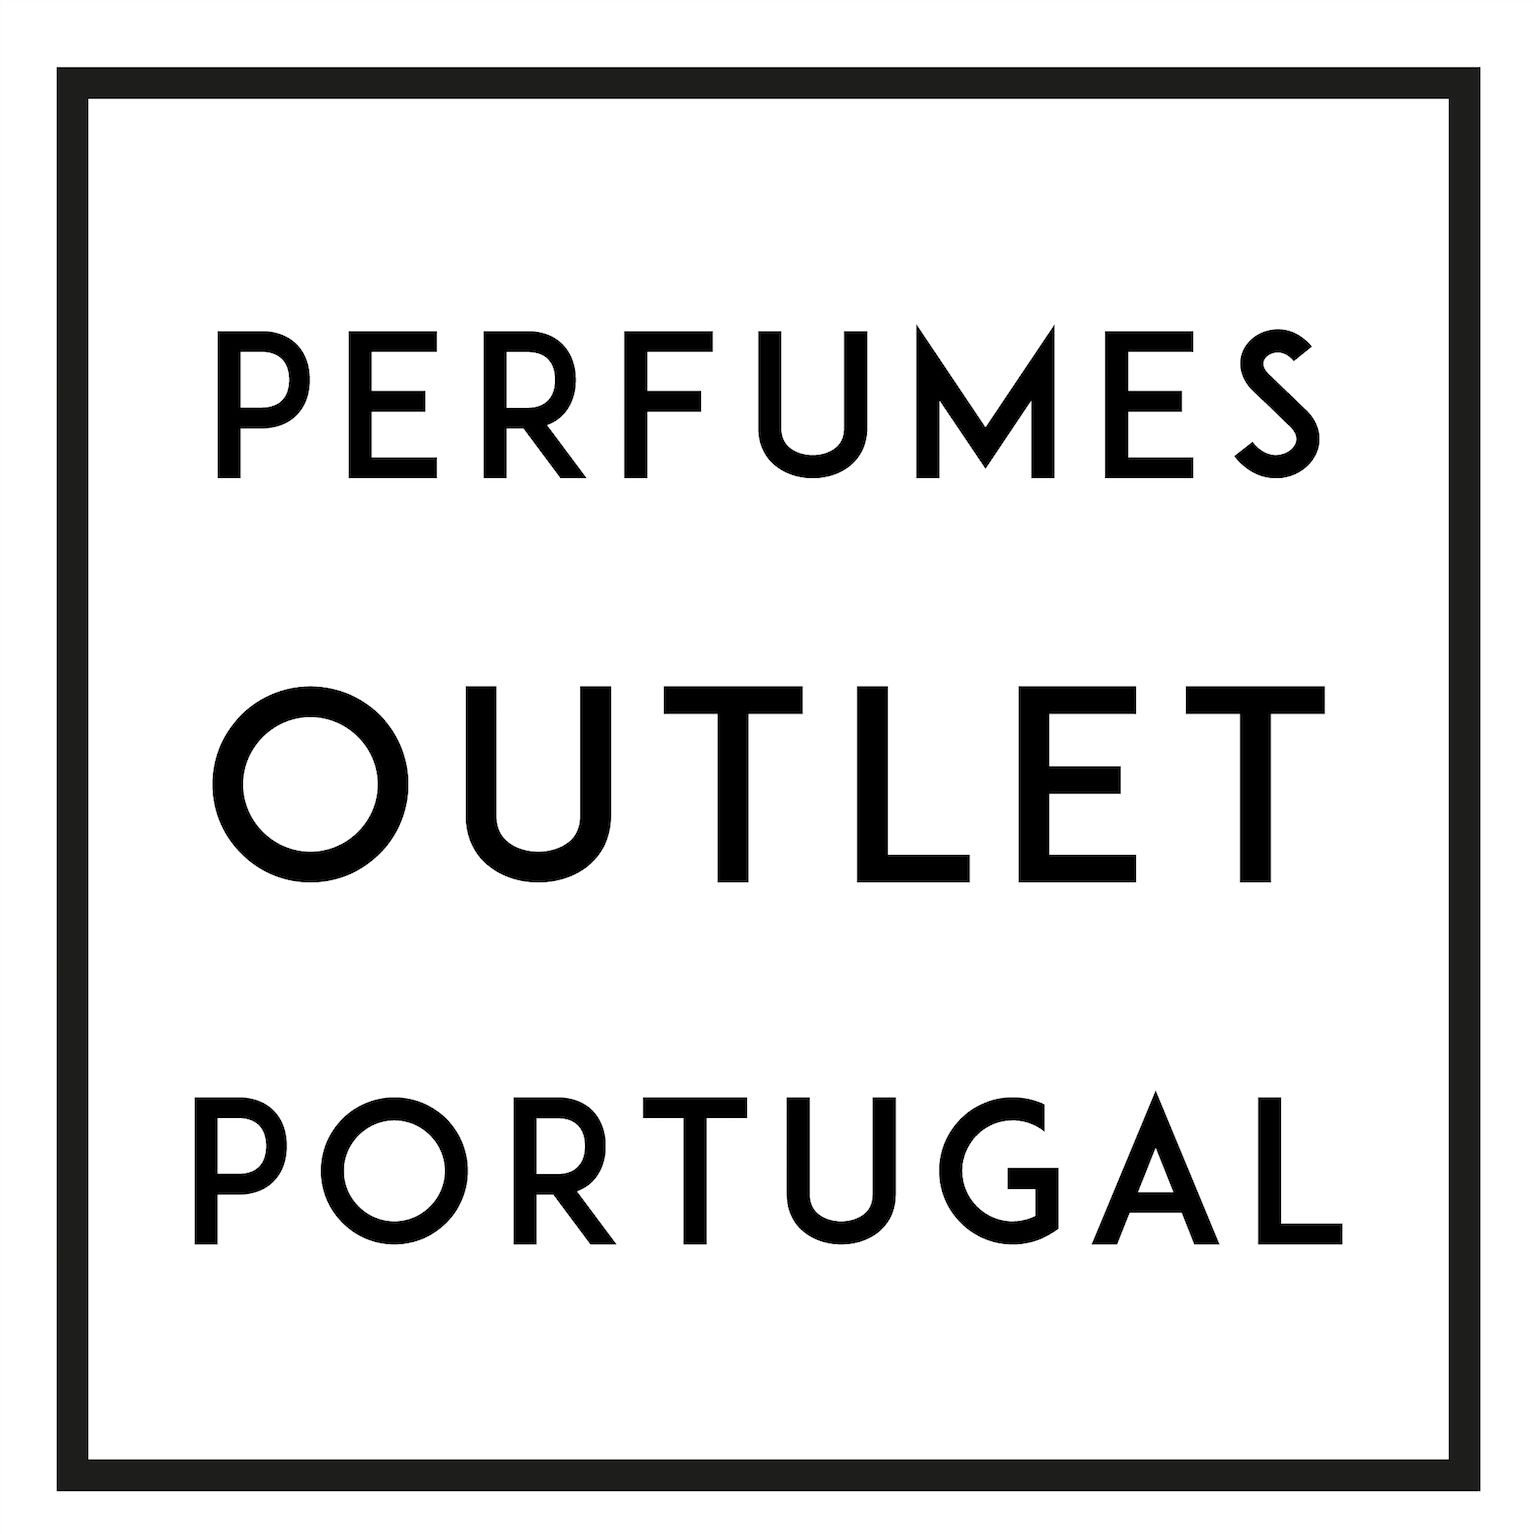 Perfumes Outlet Portugal